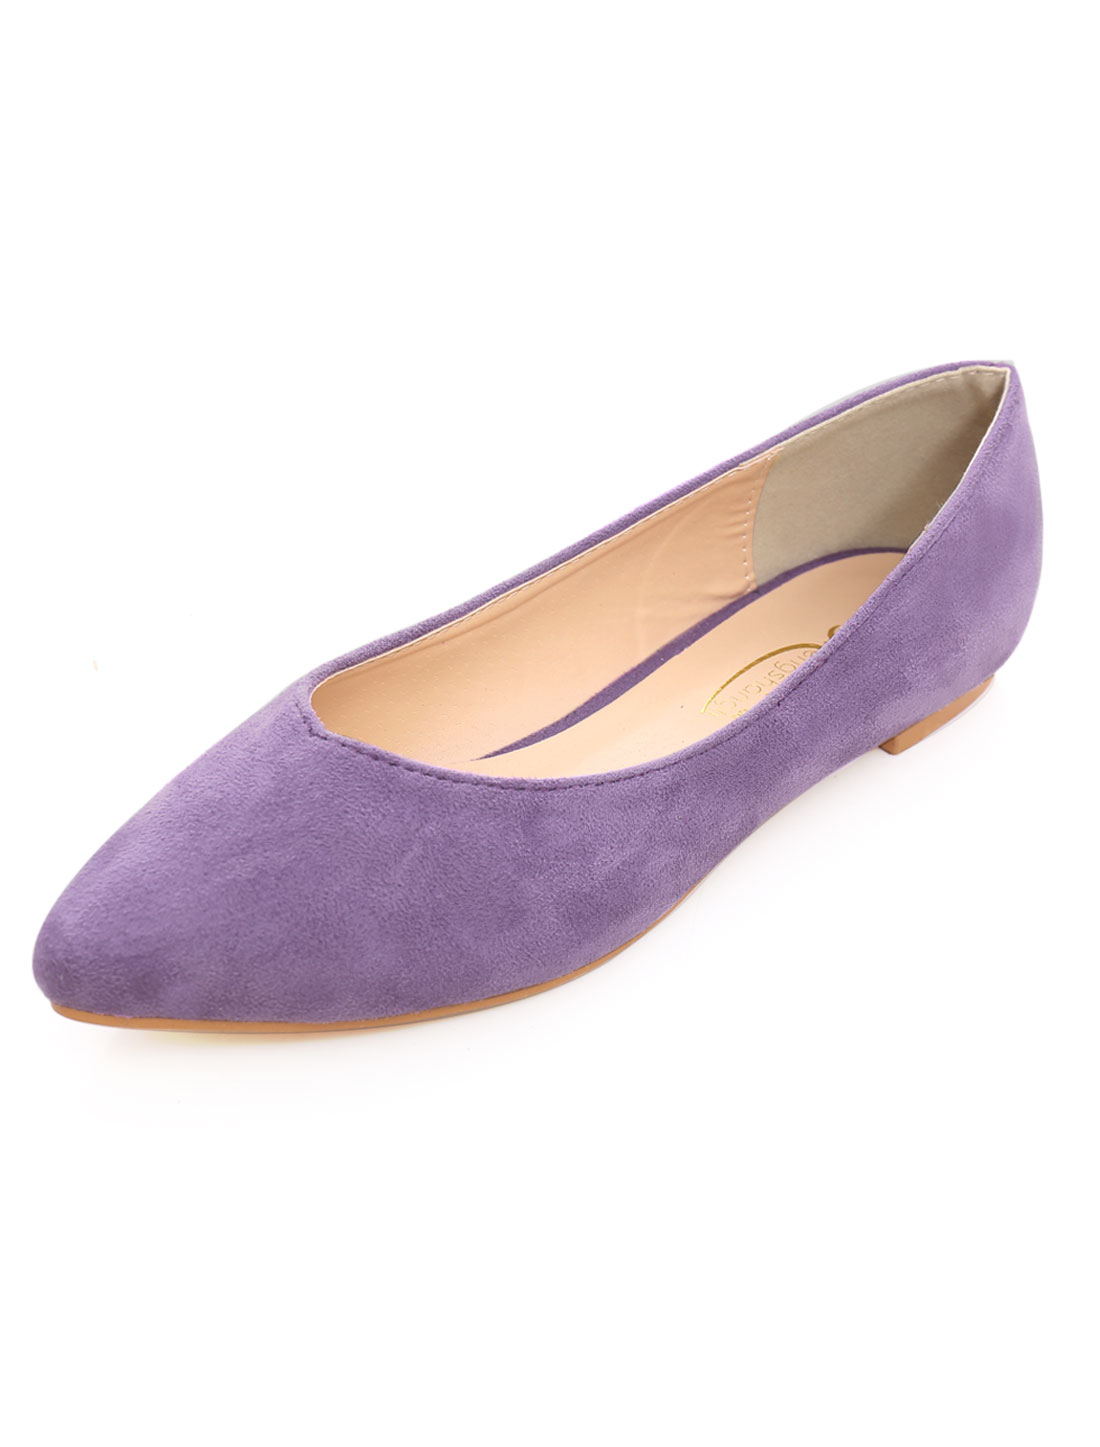 Woman Faux Suede Textured Outsole Pointed Ballet Flat Purple US 8